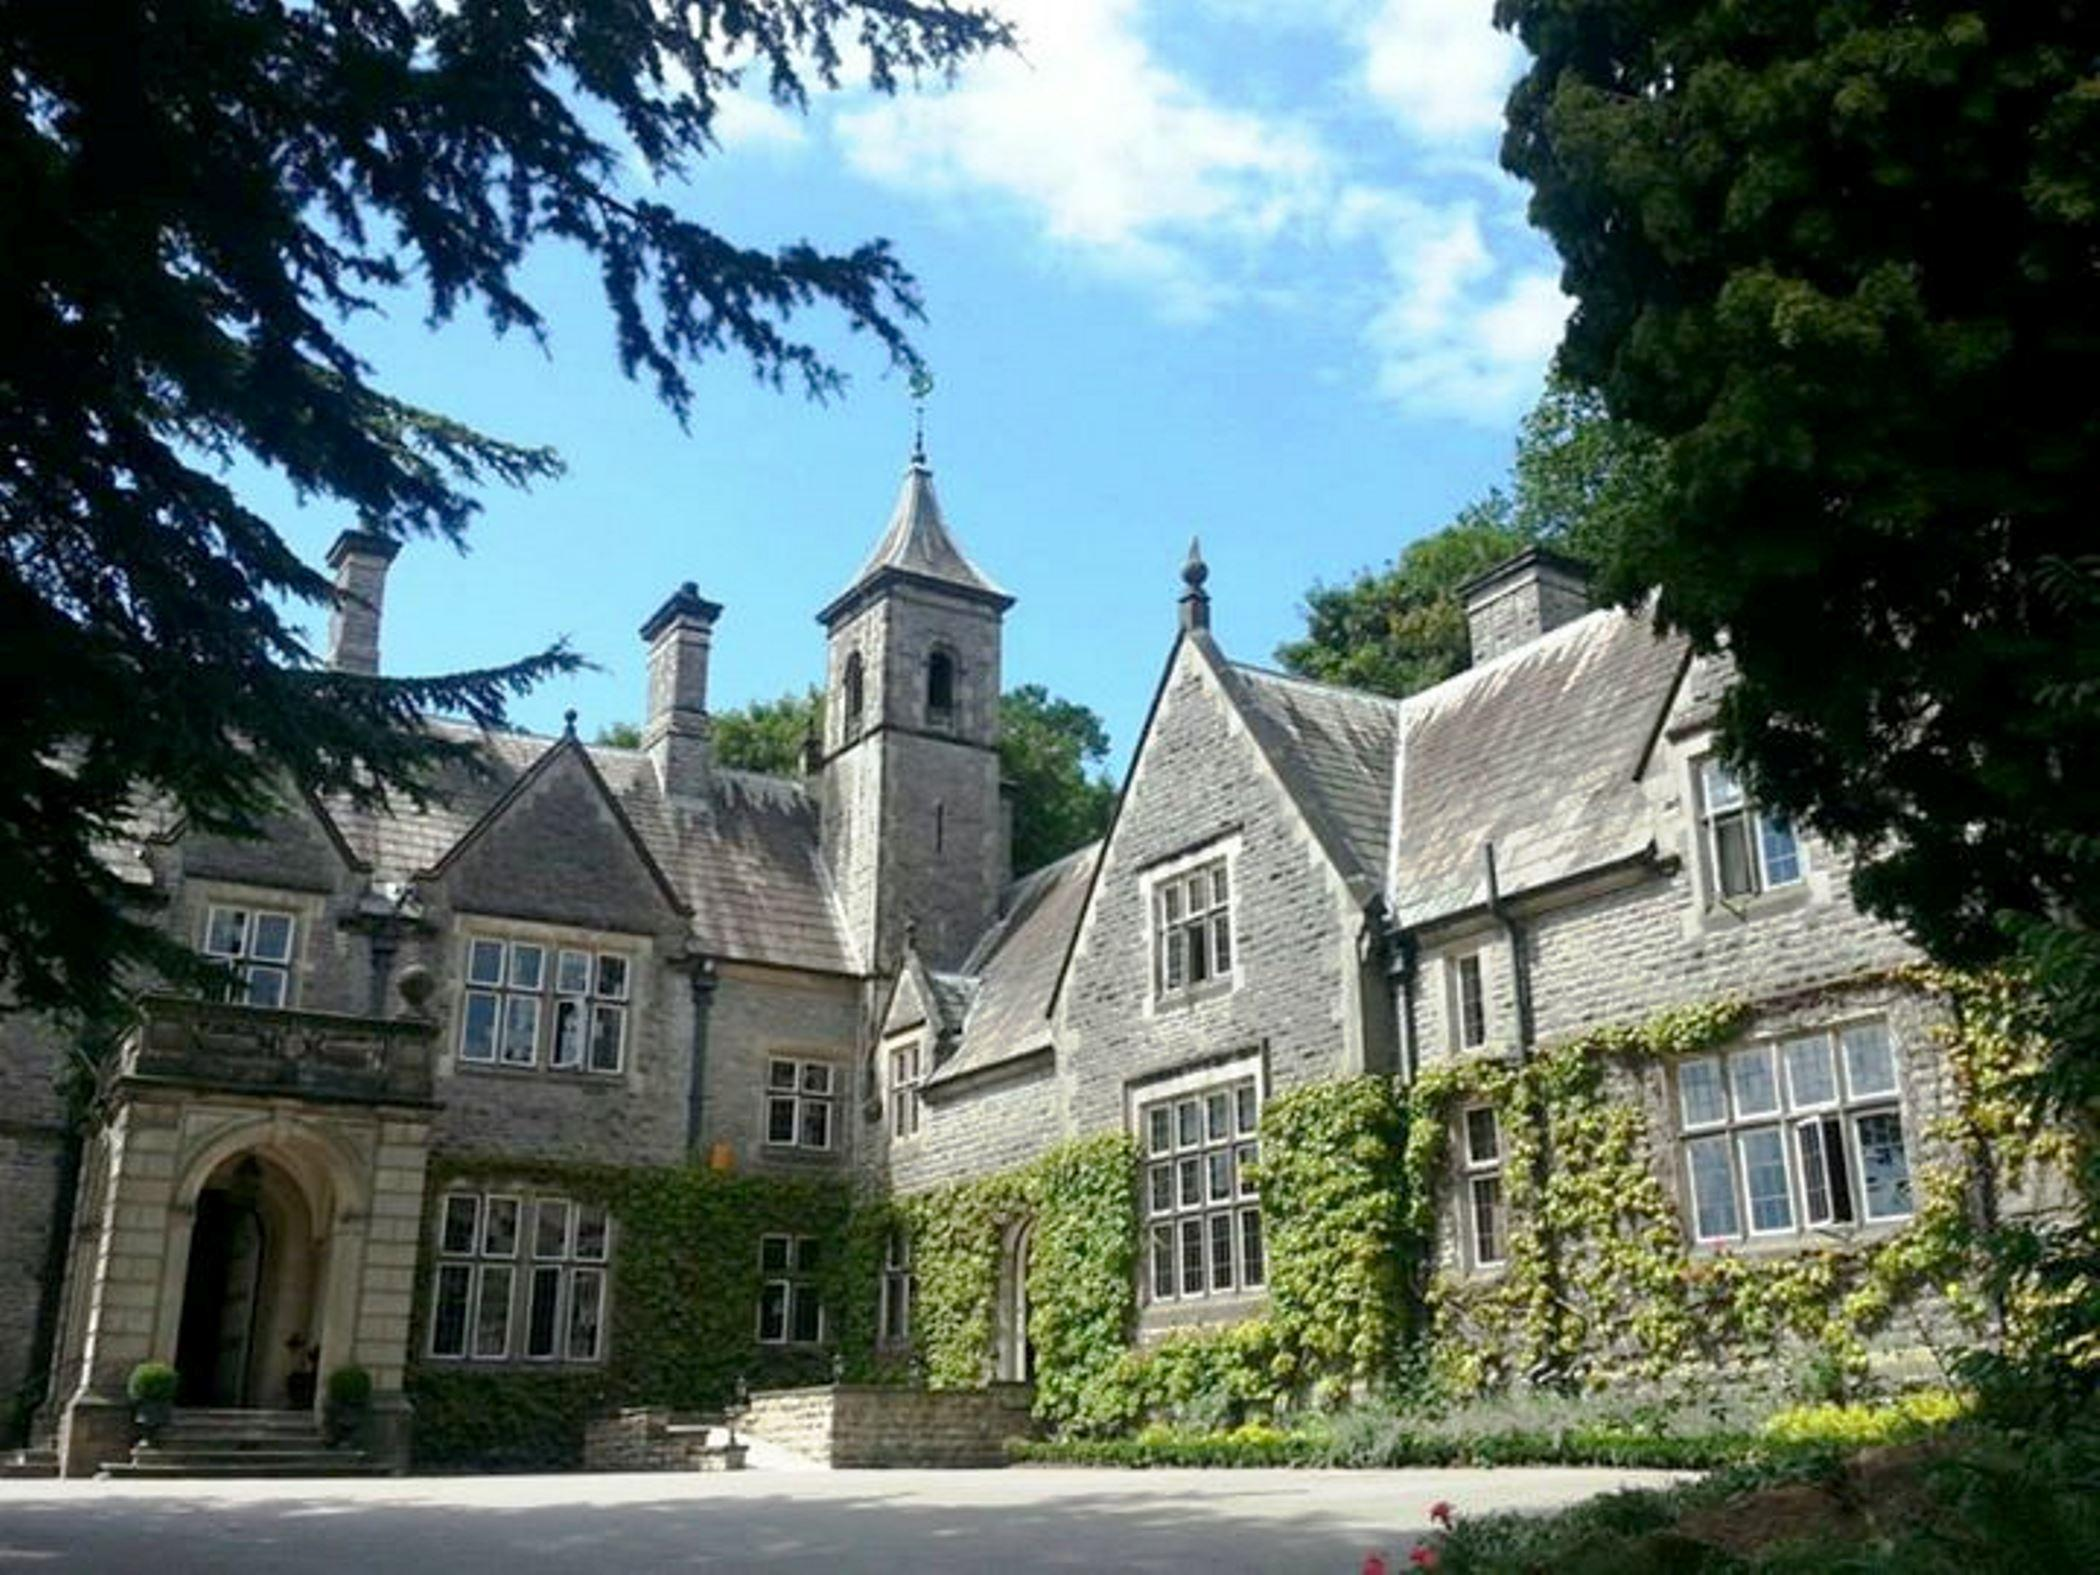 Callow Hall, Staffordshire